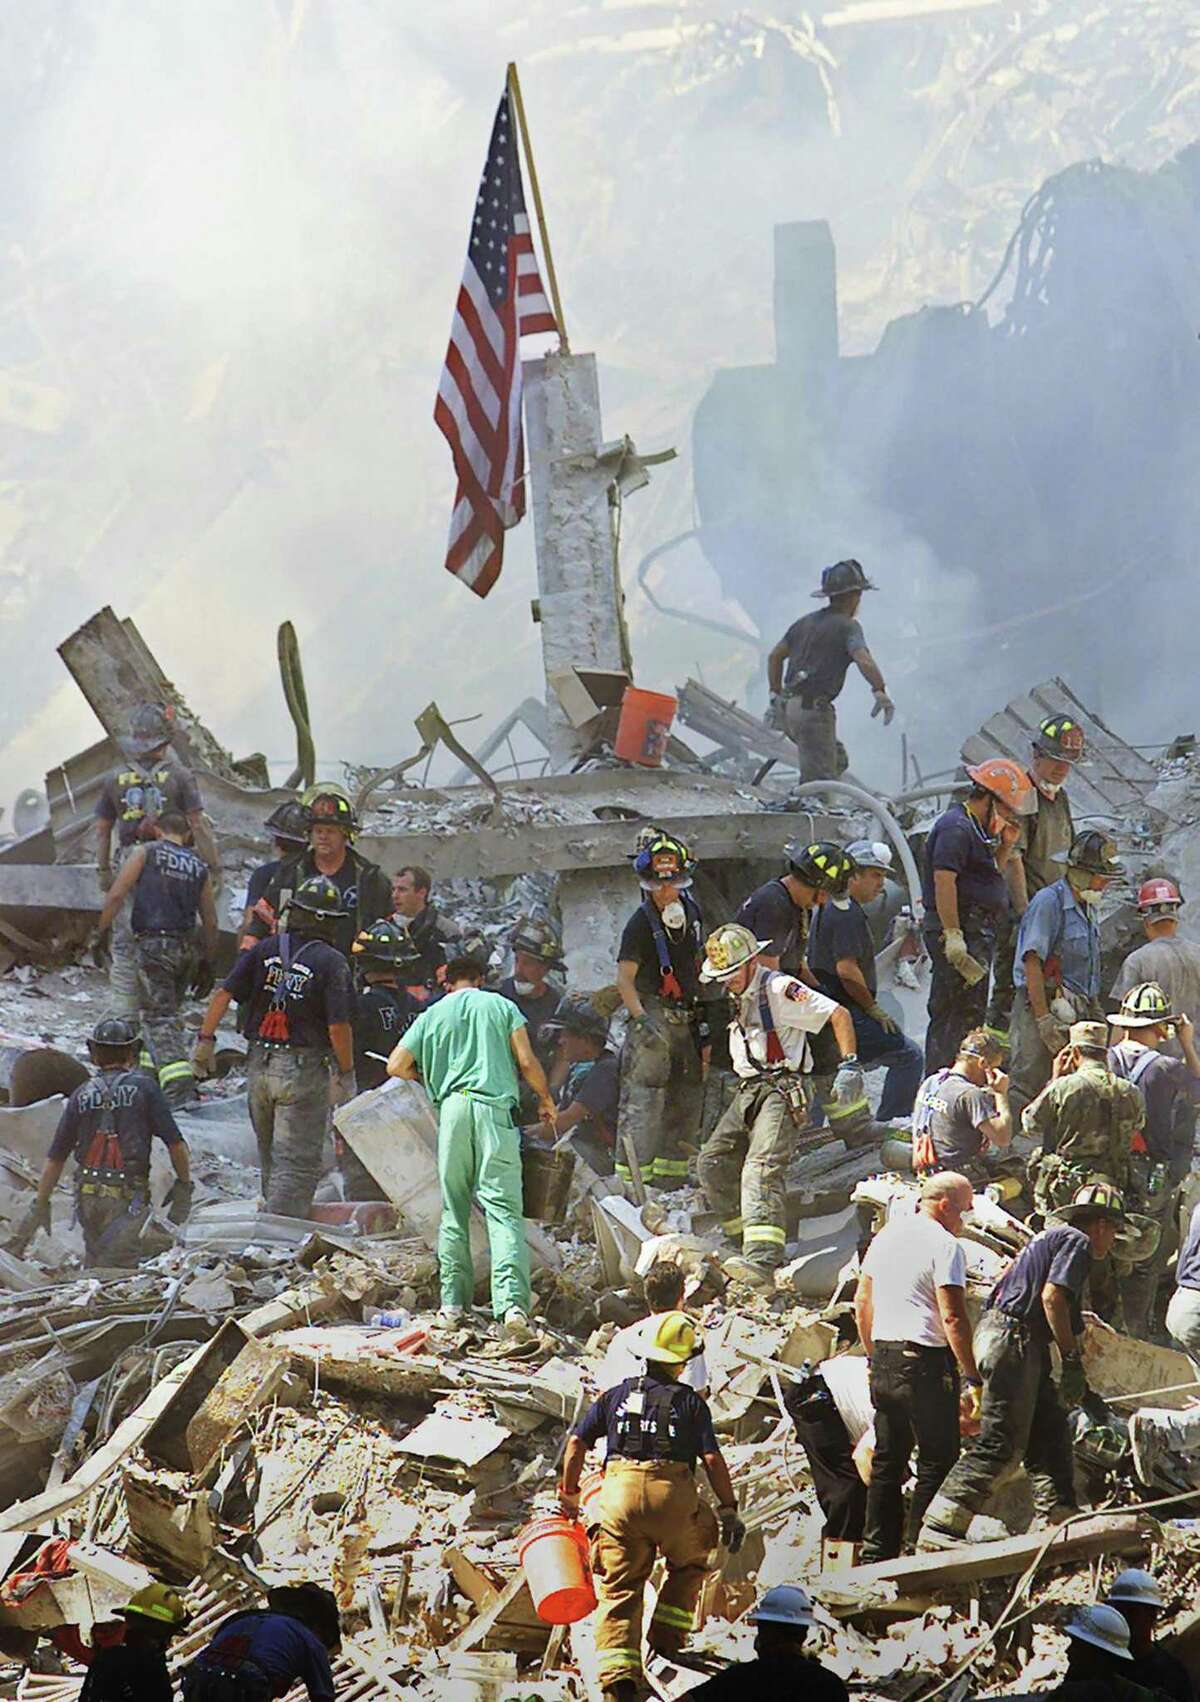 At right, an American flag flies above firefighters and other responders searching the rubble of the World Trade Center two days after the Sept. 11 terrorist attack.